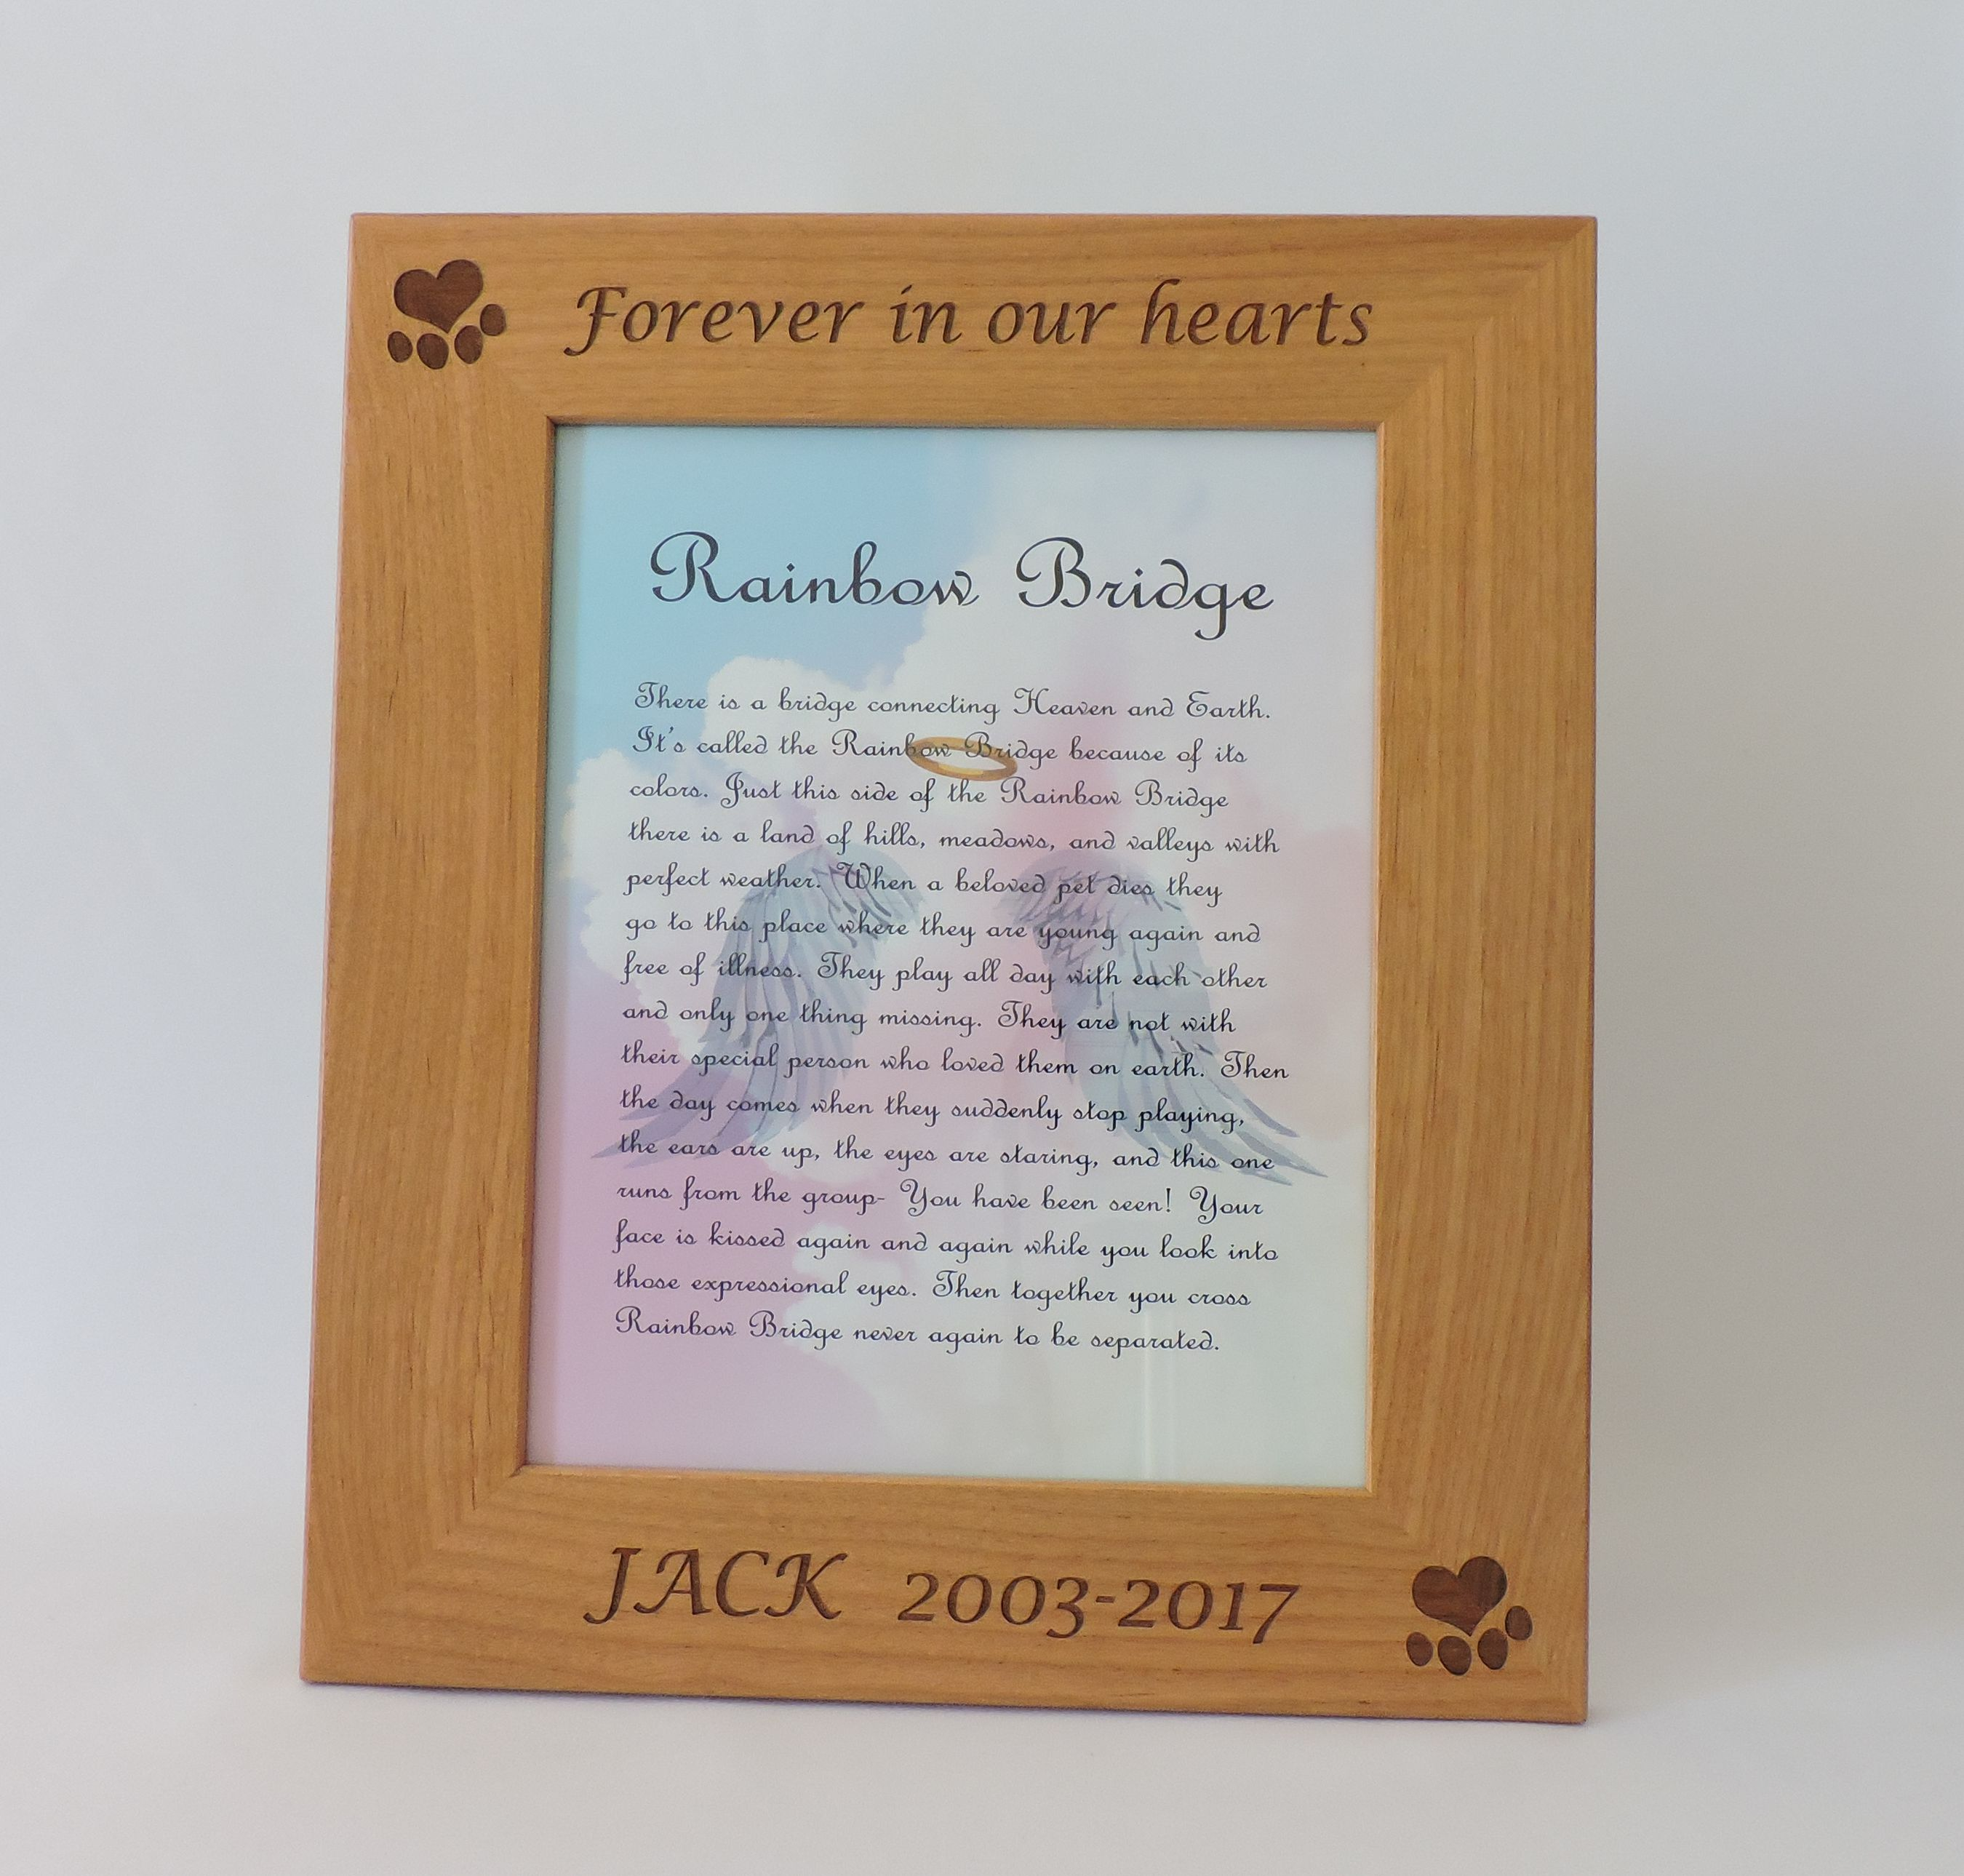 Congenial Fmg Snickers Dog Memorial Personalize Pet Photo Frame By Forever Pet Memorial Gifts Canada Pet Memorial Gifts Etsy gifts Pet Memorial Gifts